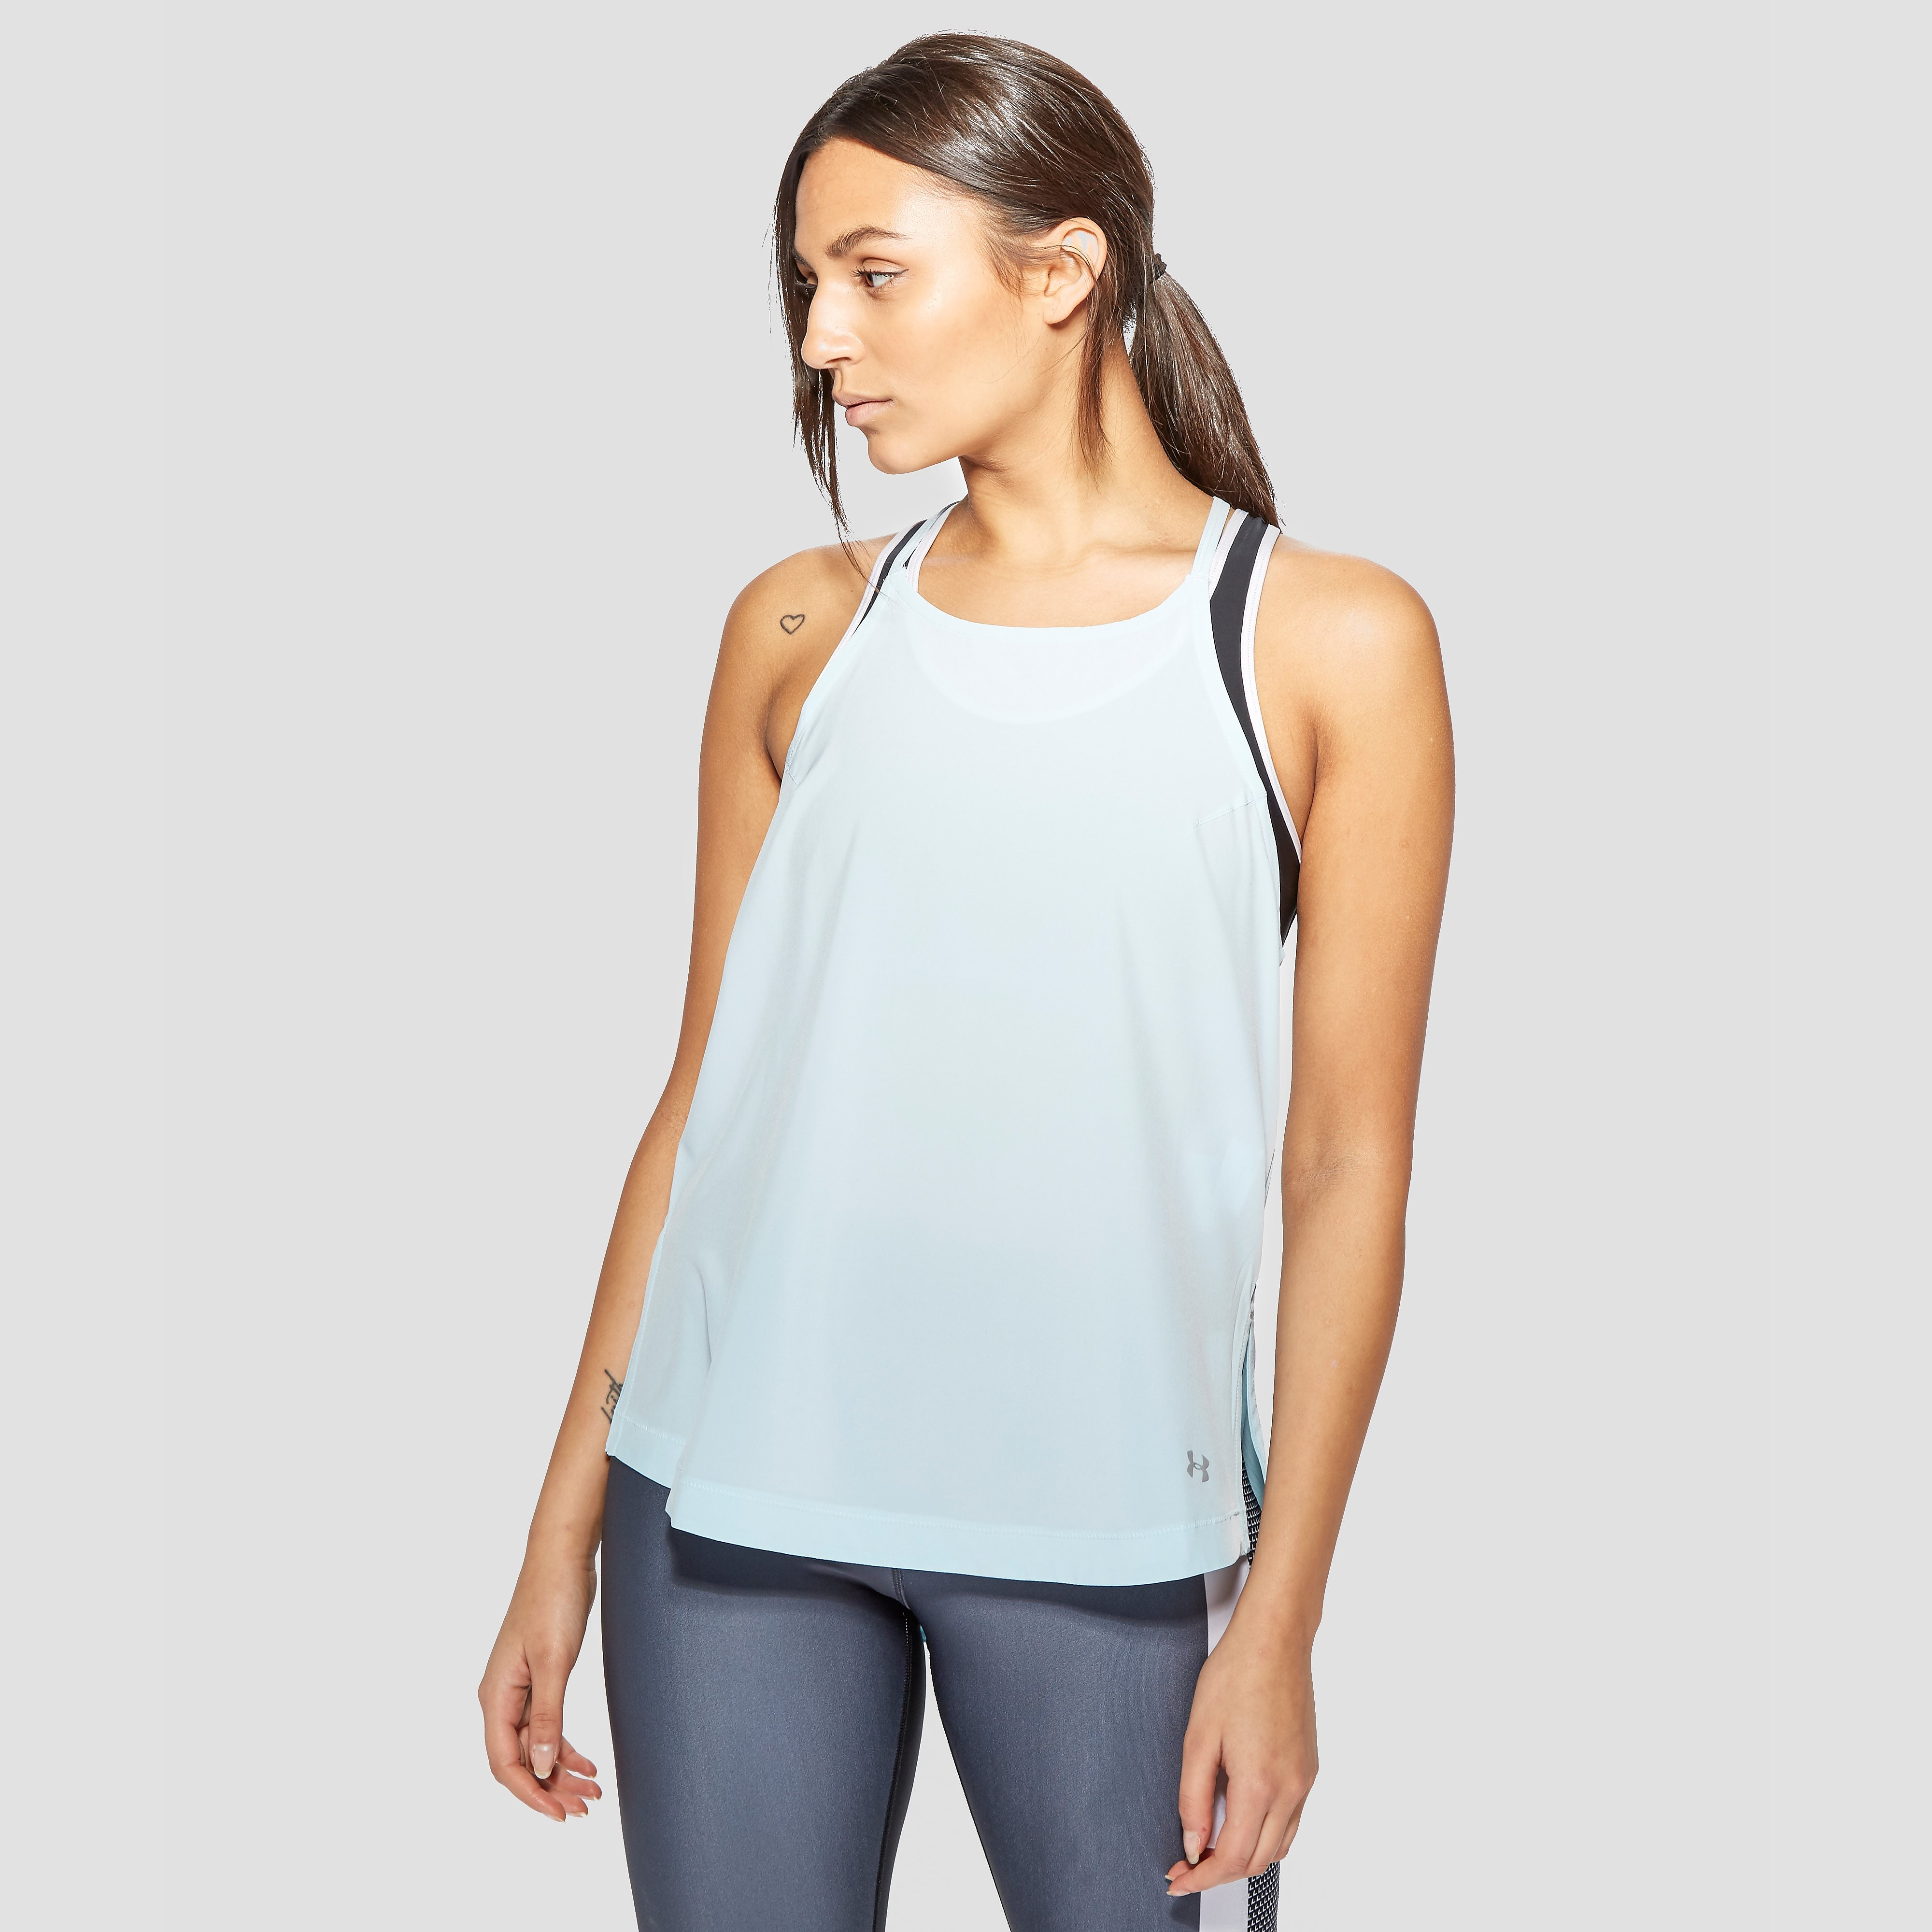 Under Armour Accelerate Women's Training Tank Top